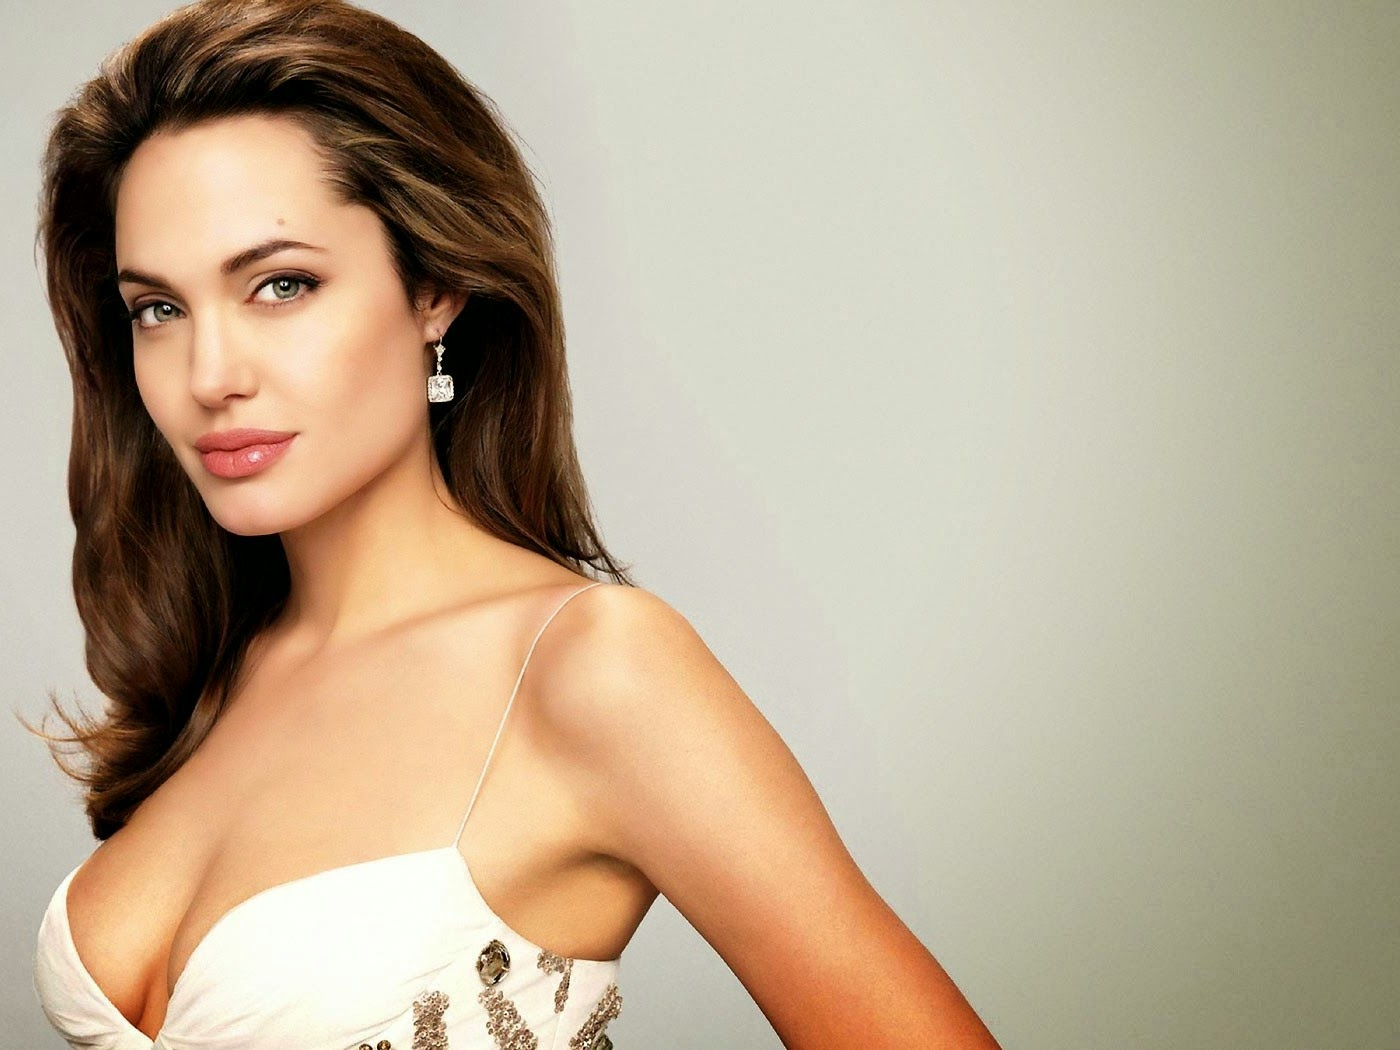 Very Stylish Girl Wallpapers Angelina Jolie Hd Wallpaper All 4u Wallpaper